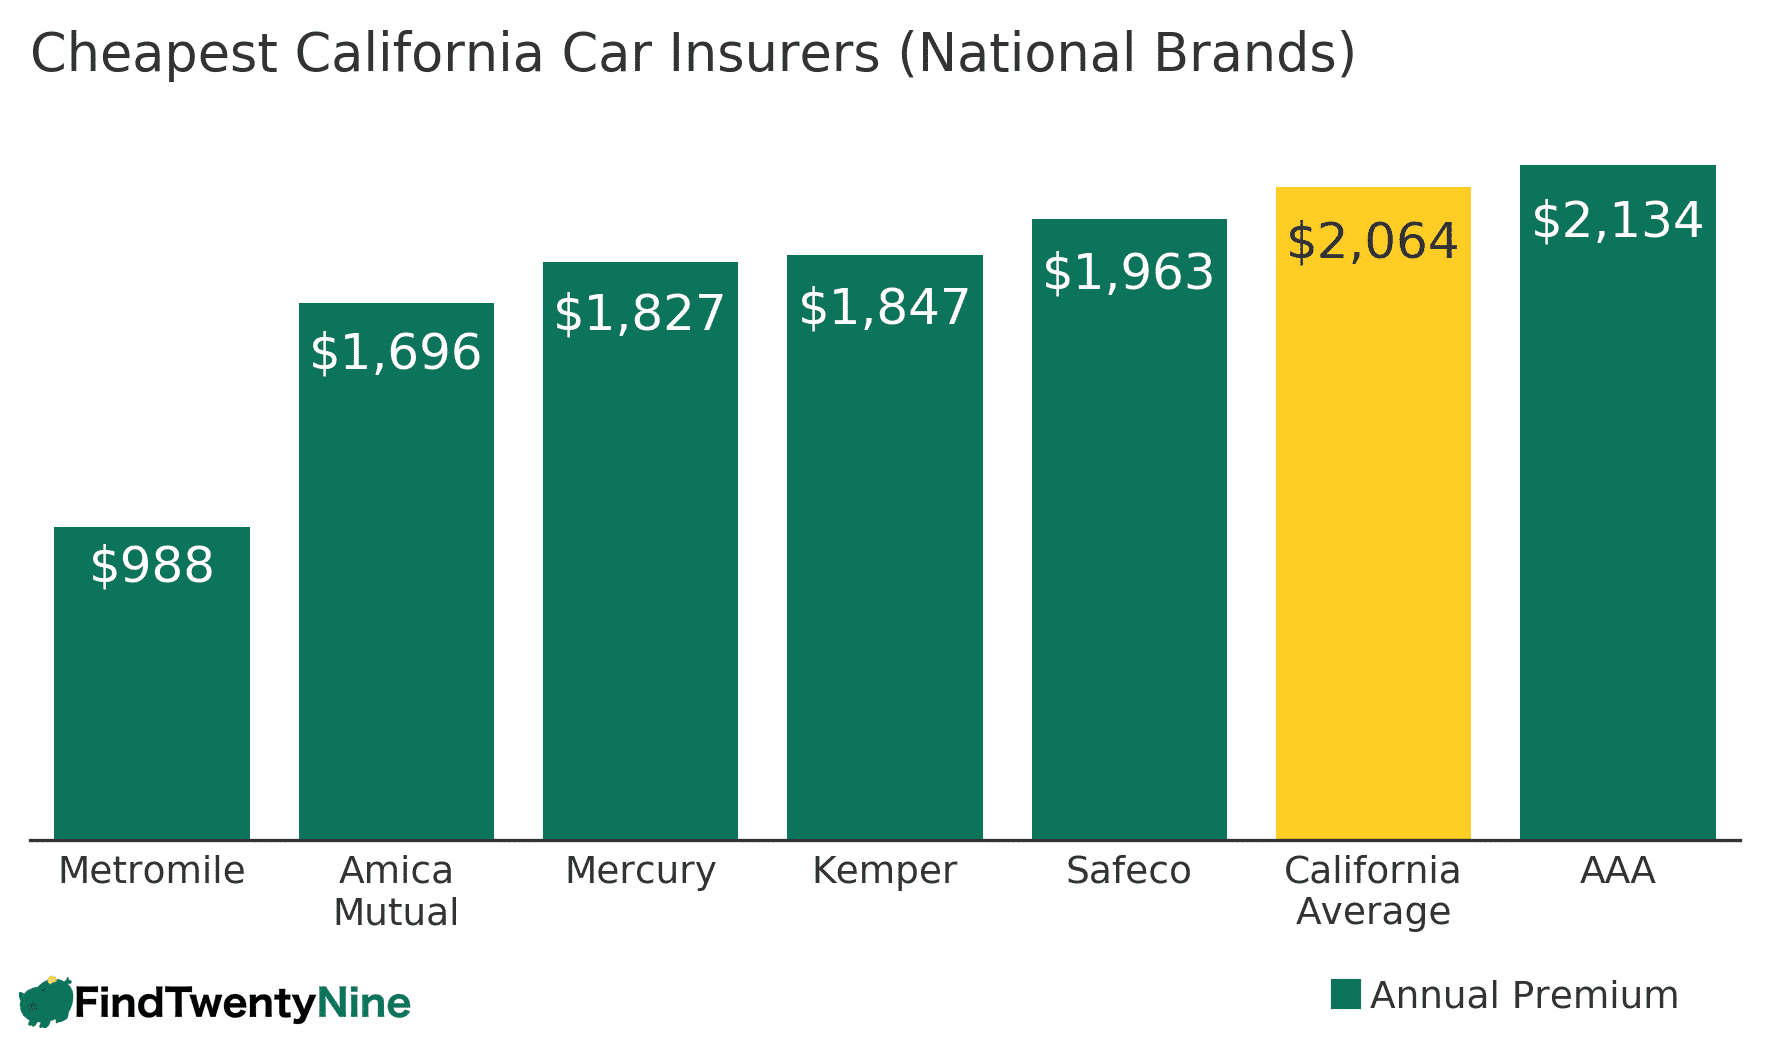 Cheapest California Car Insurance Companies (National Brands Only)